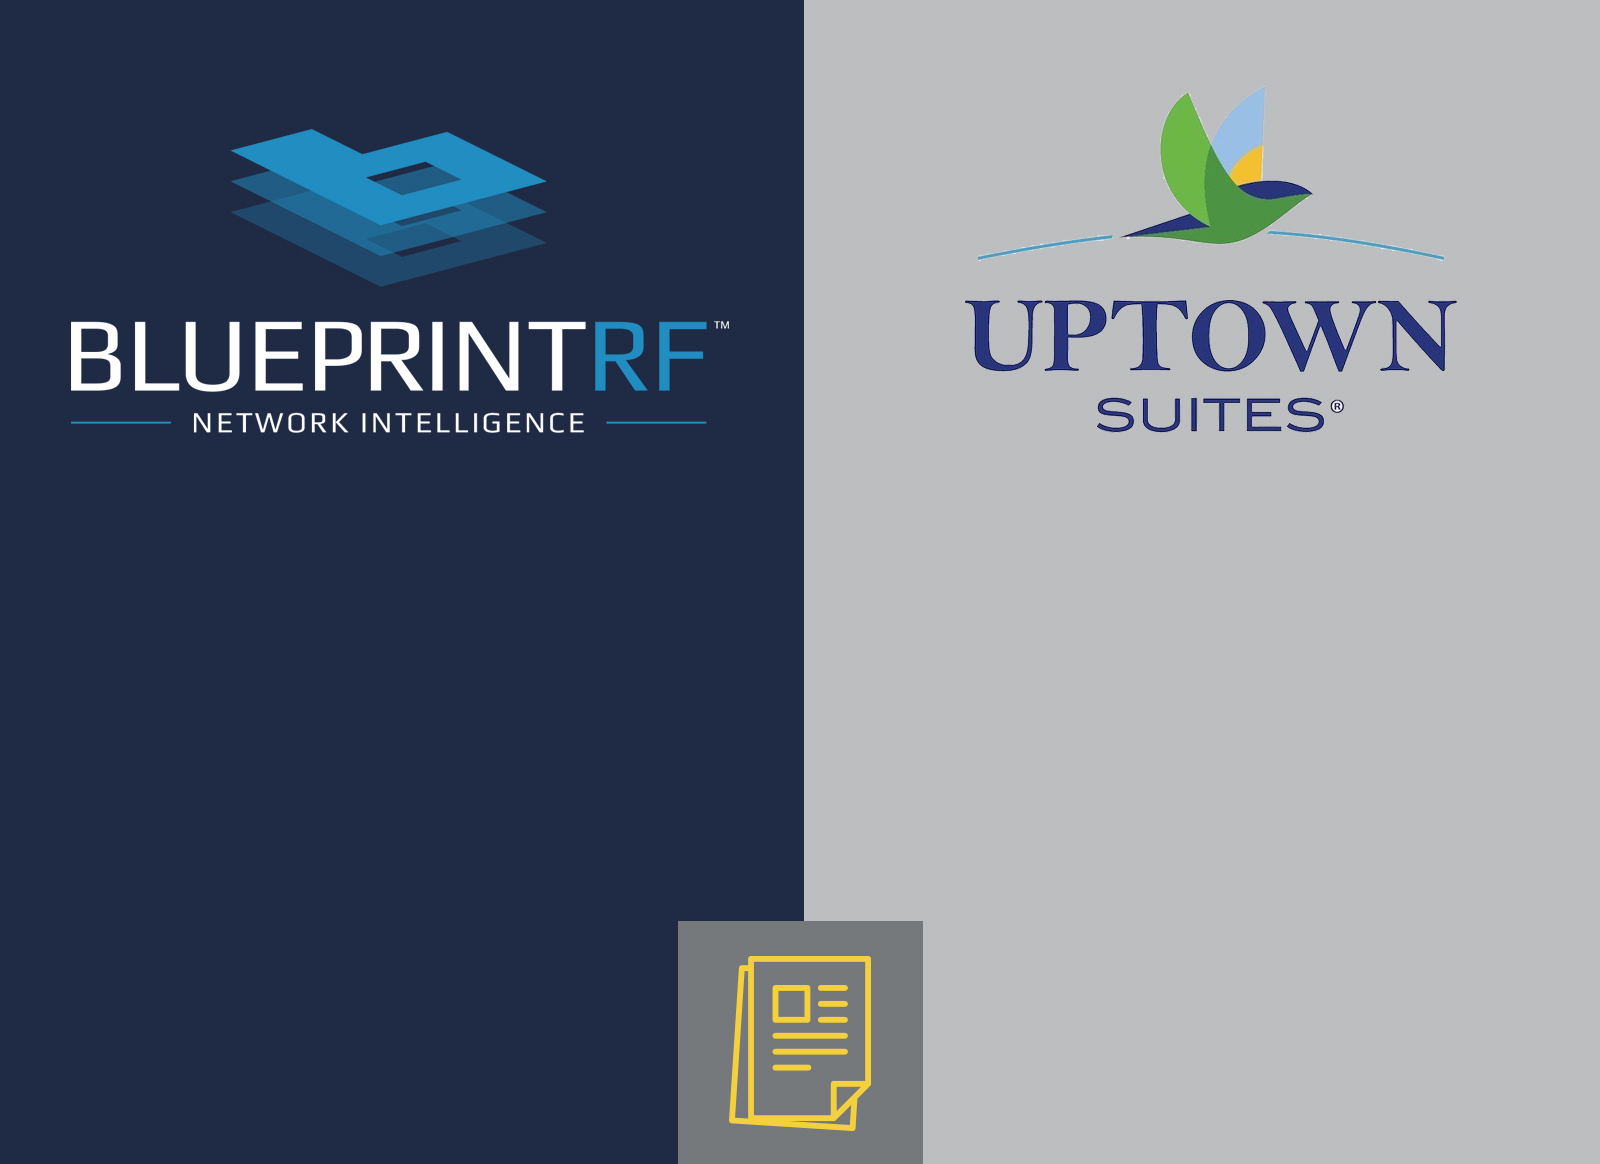 Blueprint RF, Uptown Suites News